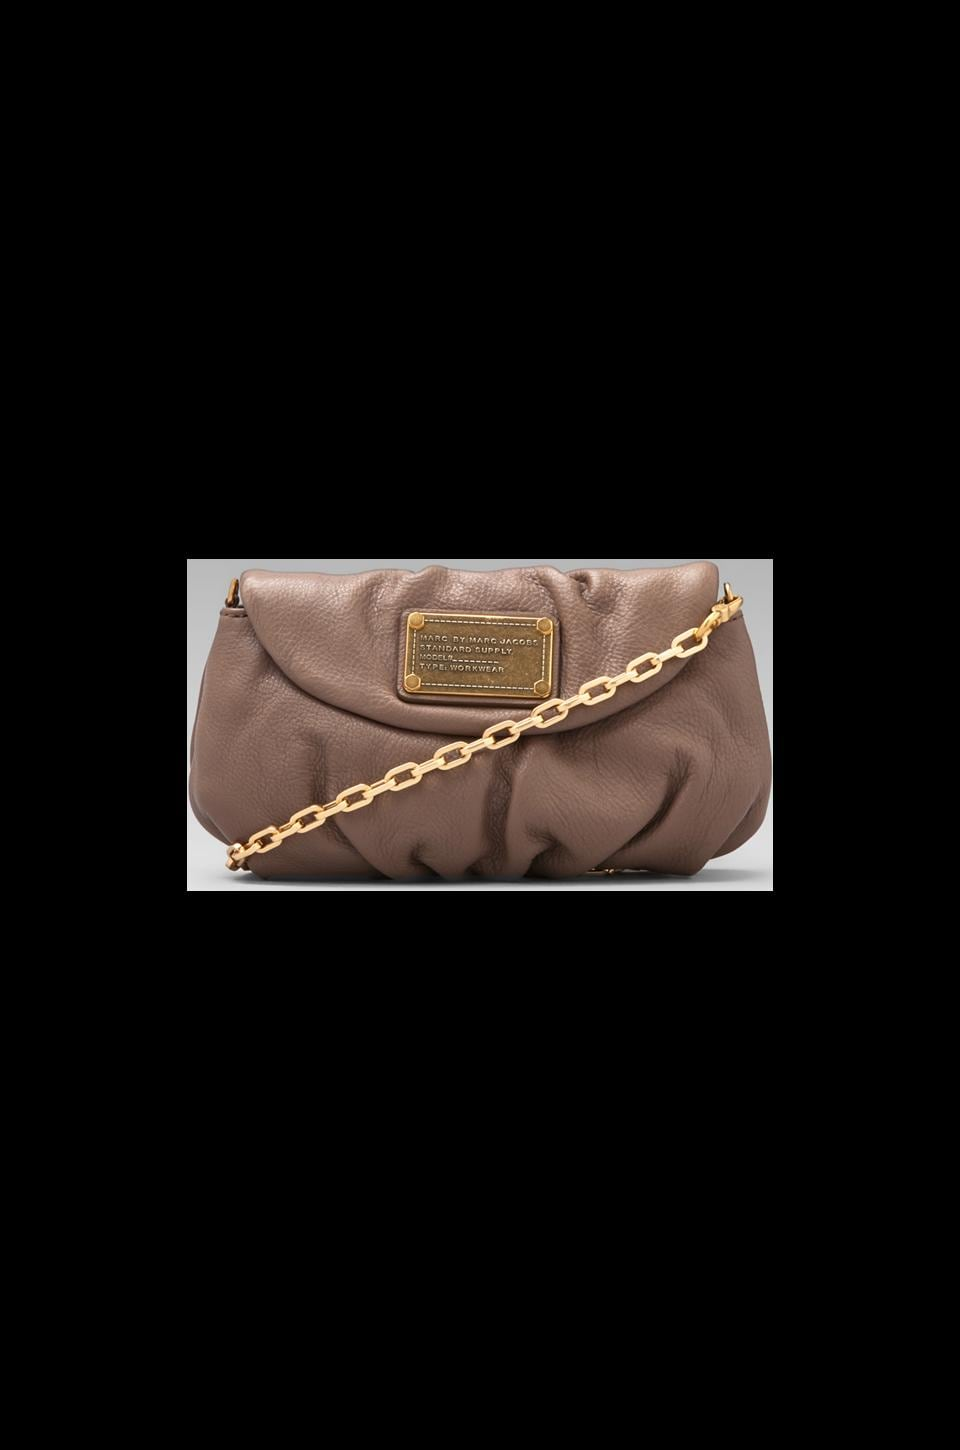 Marc by Marc Jacobs Classic Q Karlie in Rootbeer